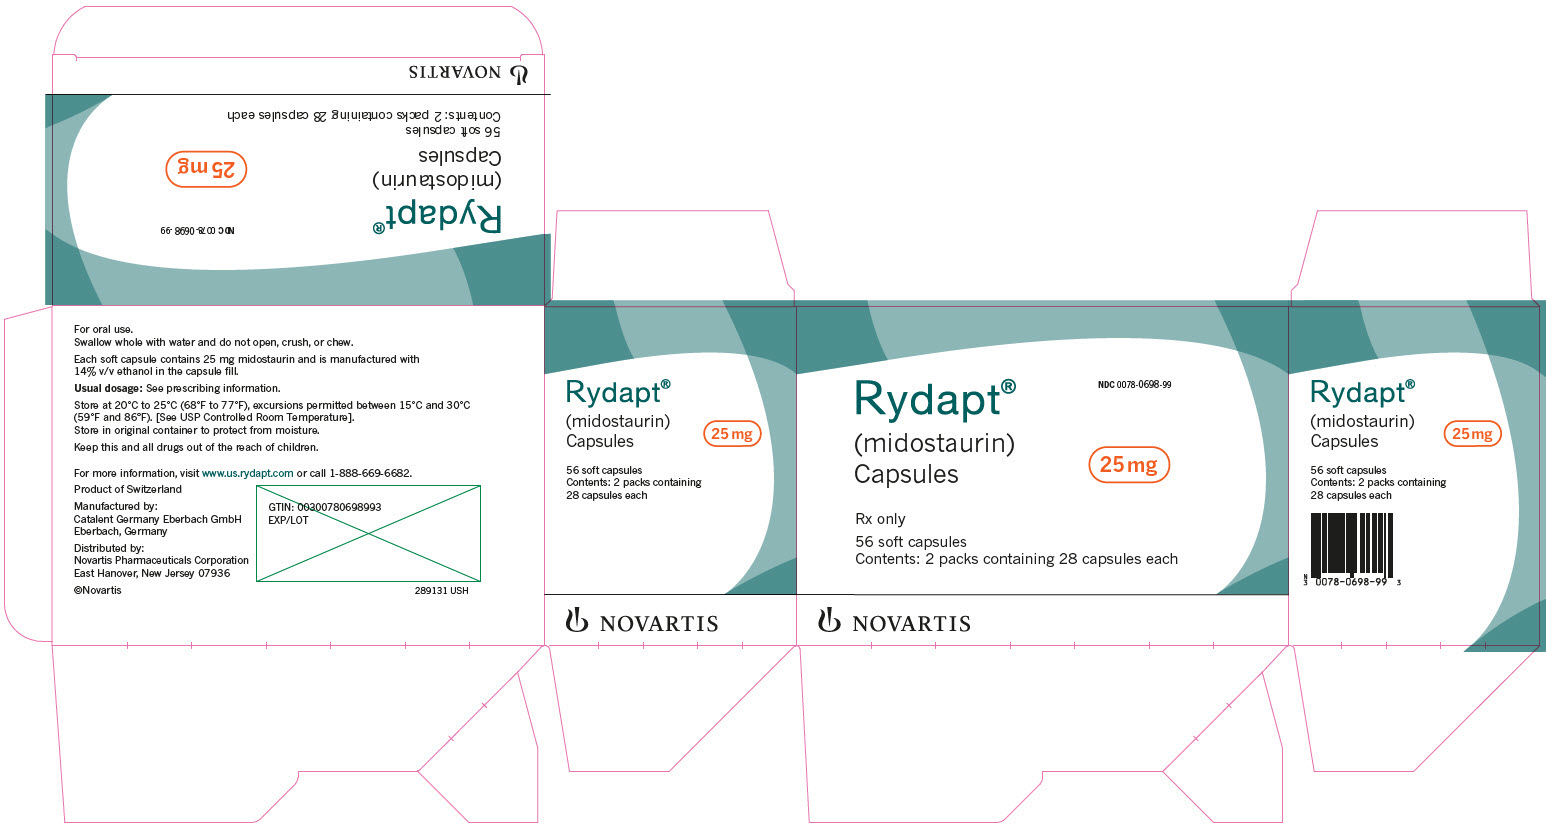 PRINCIPAL DISPLAY PANEL 								Rydapt® 								NDC 0078-0698-99 								(midostaurin) Capsules 								25 mg 								Rx only 								56 soft capsules 								Contents: 2 packs containing 28 capsules each 								NOVARTIS